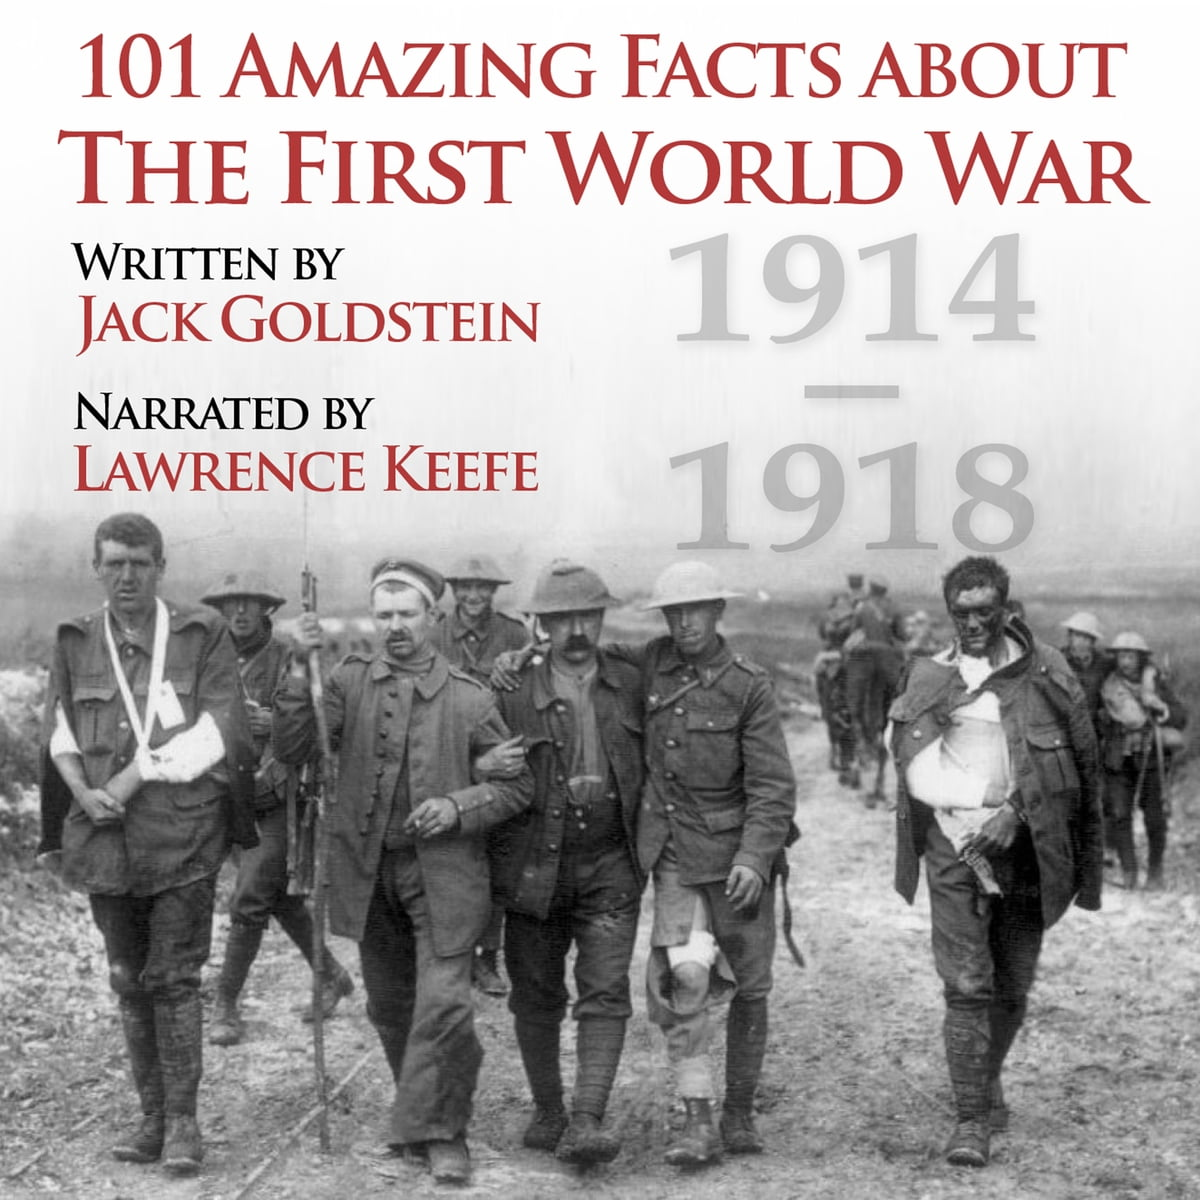 101 Amazing Facts about the First World War Audiobook by Jack Goldstein -  9781785387913 | Rakuten Kobo